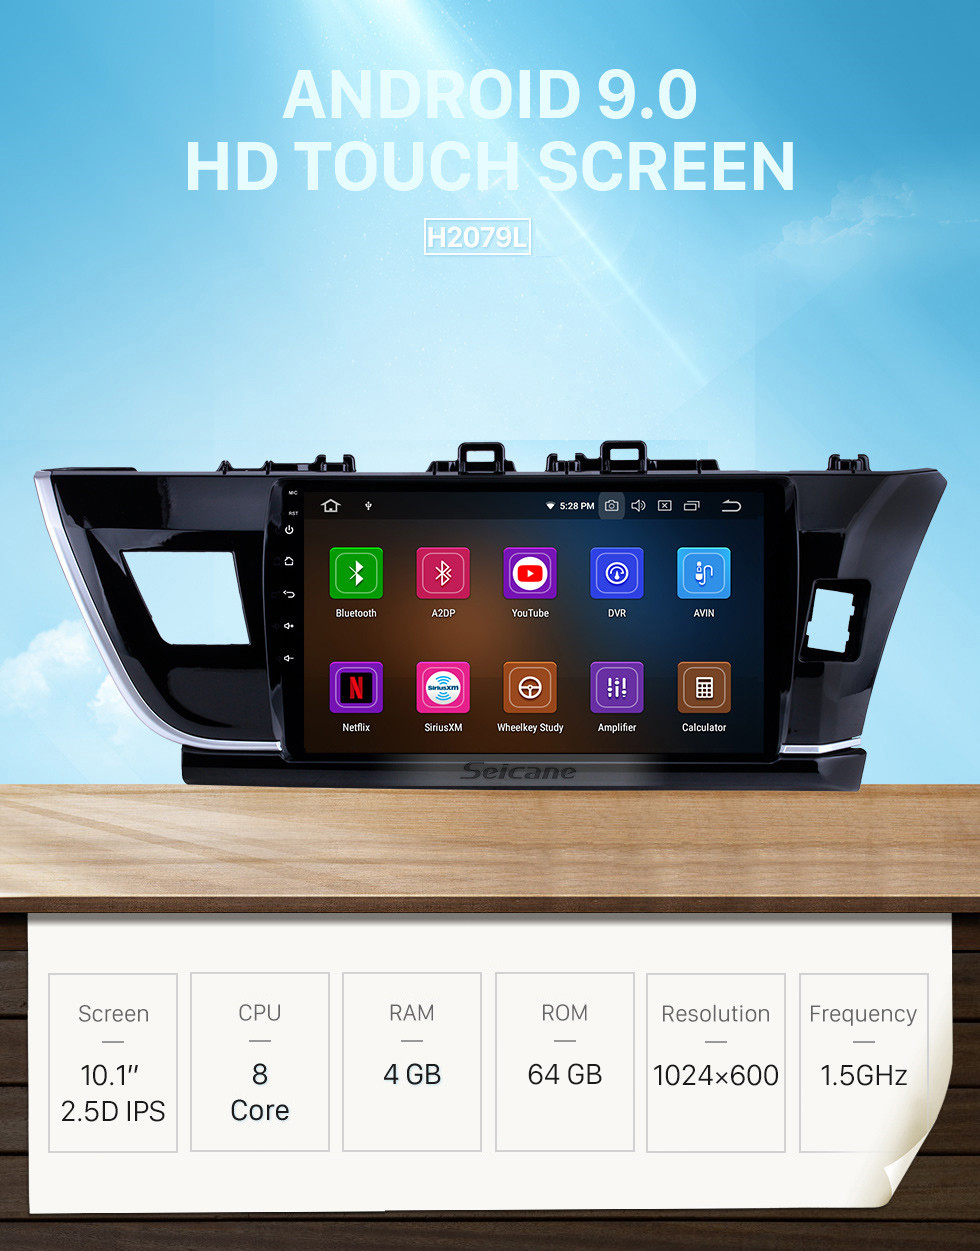 Seicane 10.1 inch Android 9.0 HD touchscreen Radio GPS Navigation System for 2014 Toyota Corolla RHD Bluetooth Rearview camera TV 1080P 4G WIFI Steering Wheel Control Mirror link